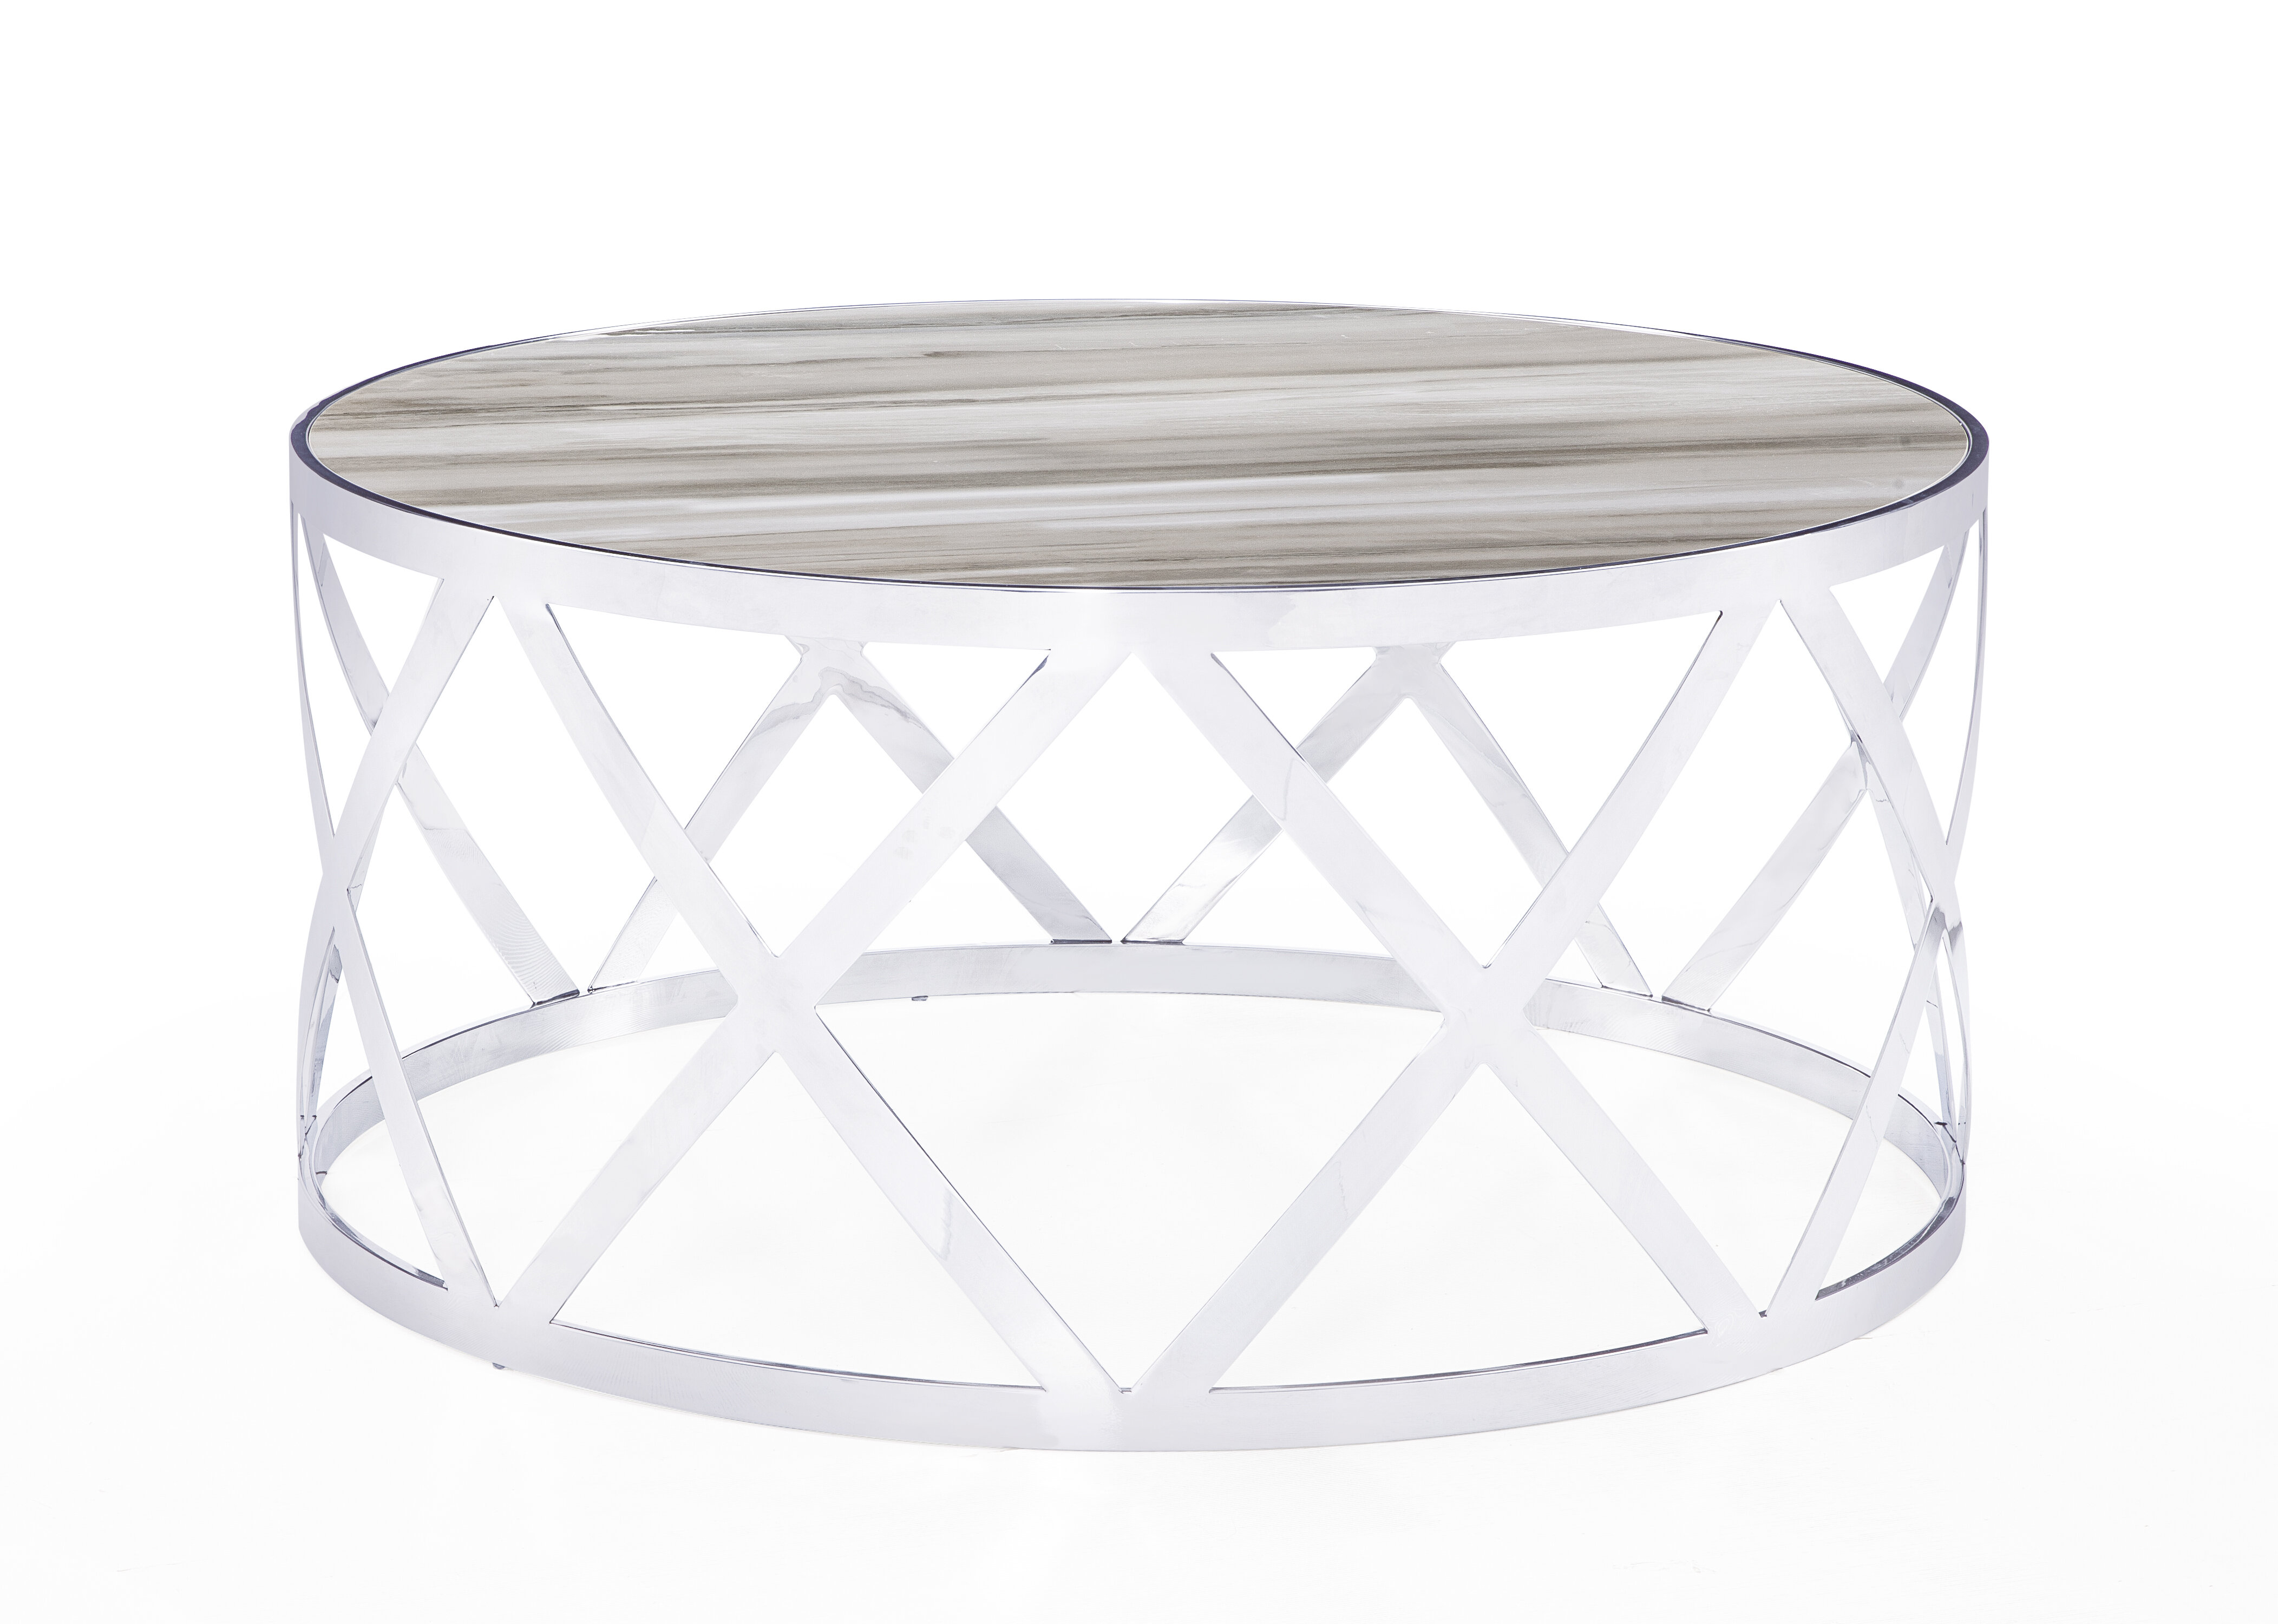 Blink Home Tribeca Coffee Table & Reviews